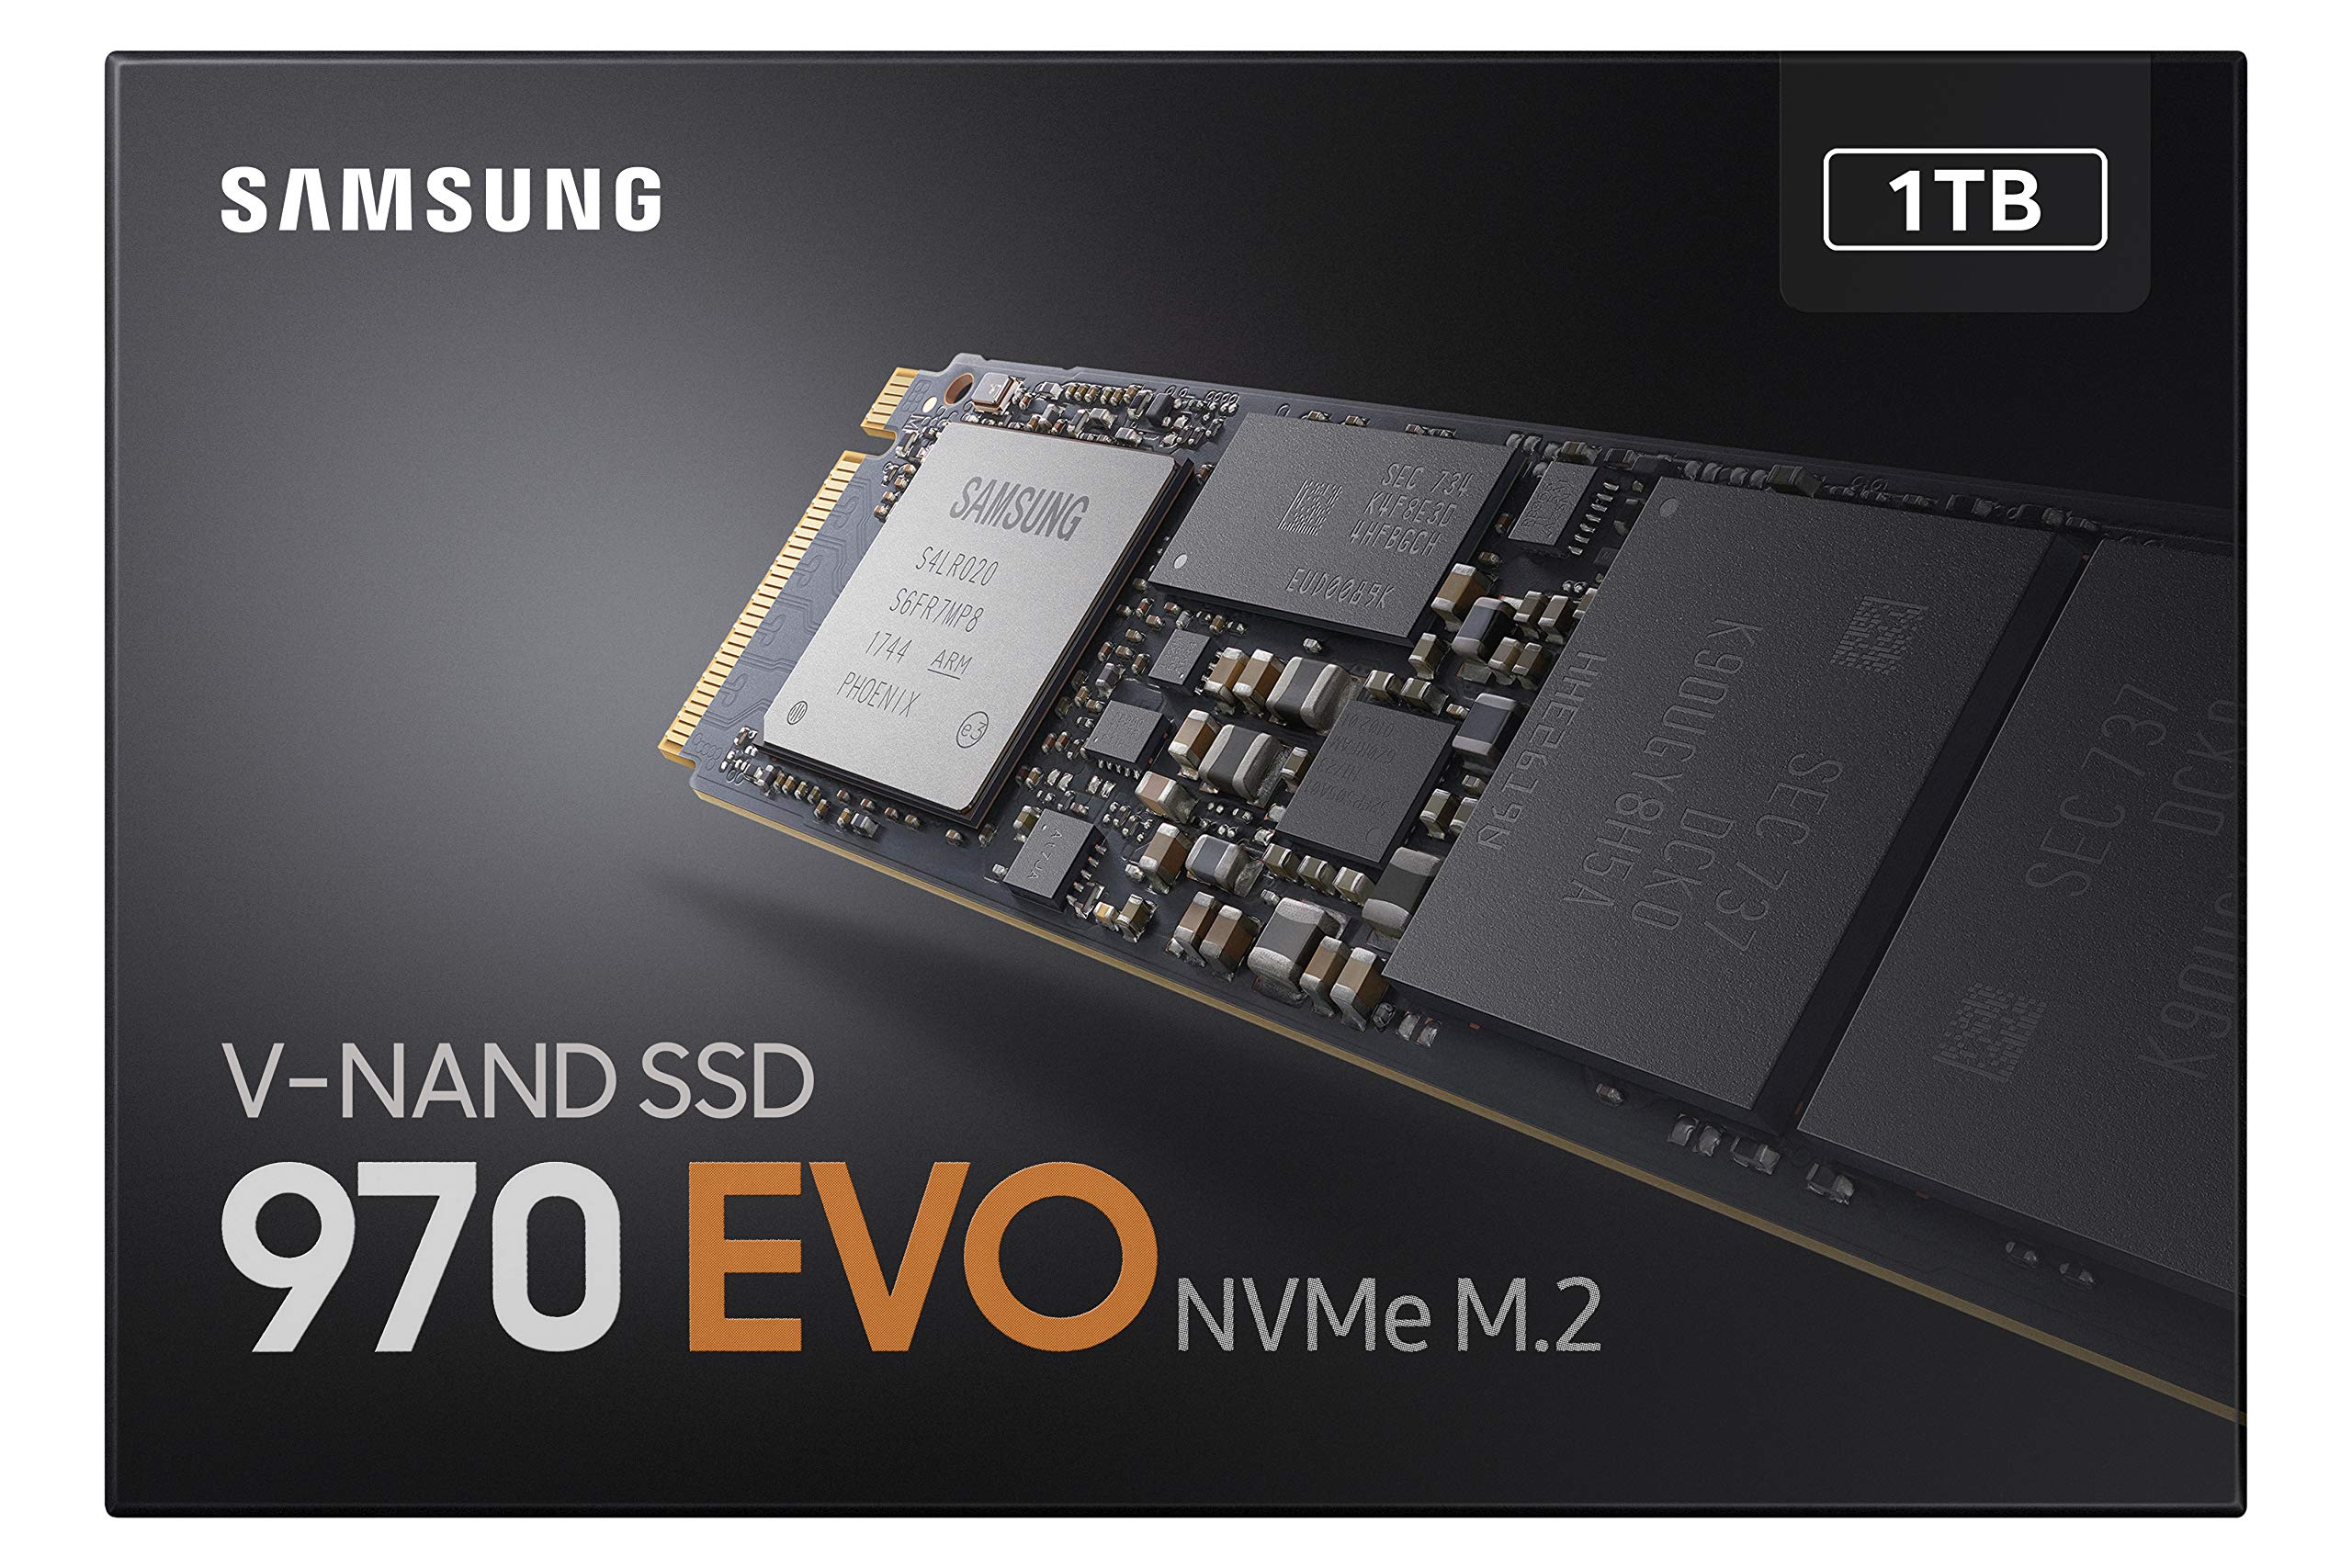 Samsung 970 EVO 10 Built with Samsung's industry leading V NAND technology for reliable and superior performance Read speeds up to 3,500MB/s* with a 5 year limited warranty and exceptional endurance up to 1,200 TBW* (* May vary by capacity) Seamless cloning and file transfers with the Samsung Magician Software, the ideal SSD management solution for performance optimization and data security with automatic firmware updates